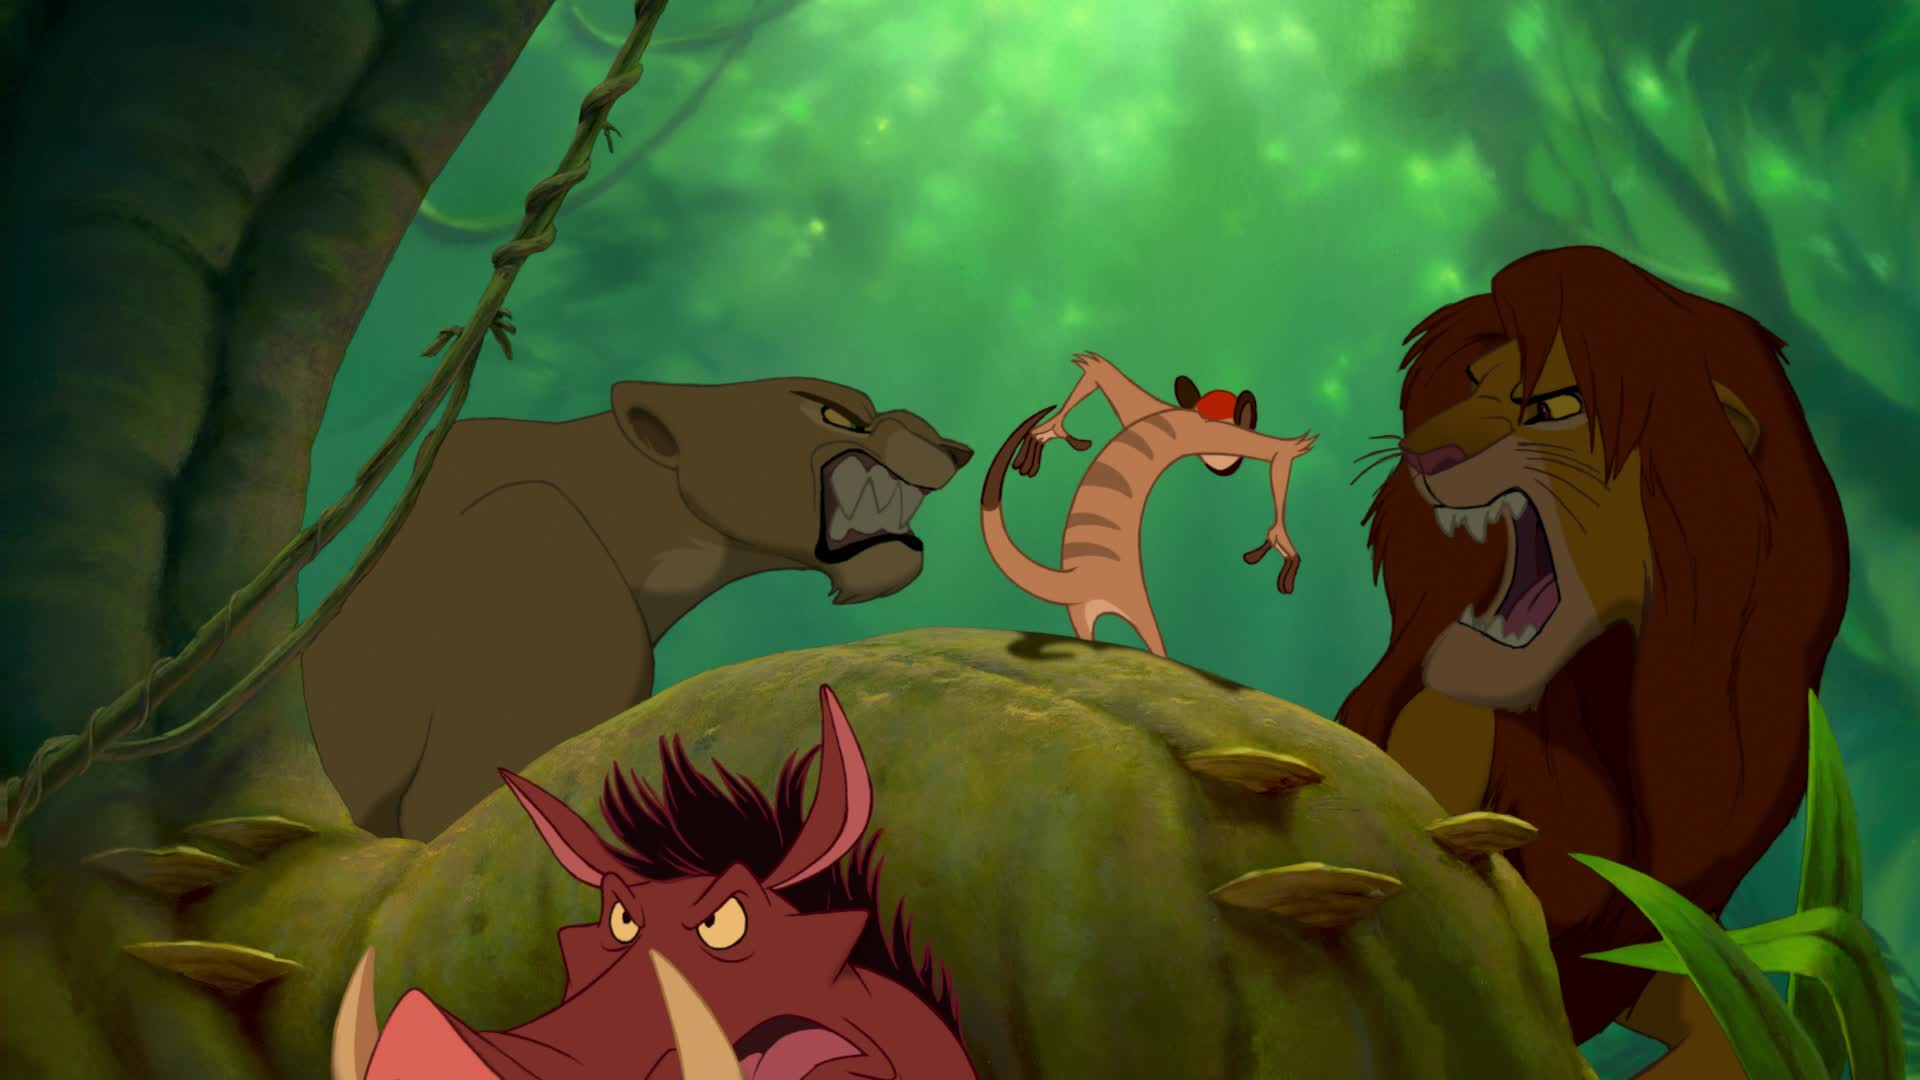 nala pregnant images reverse search